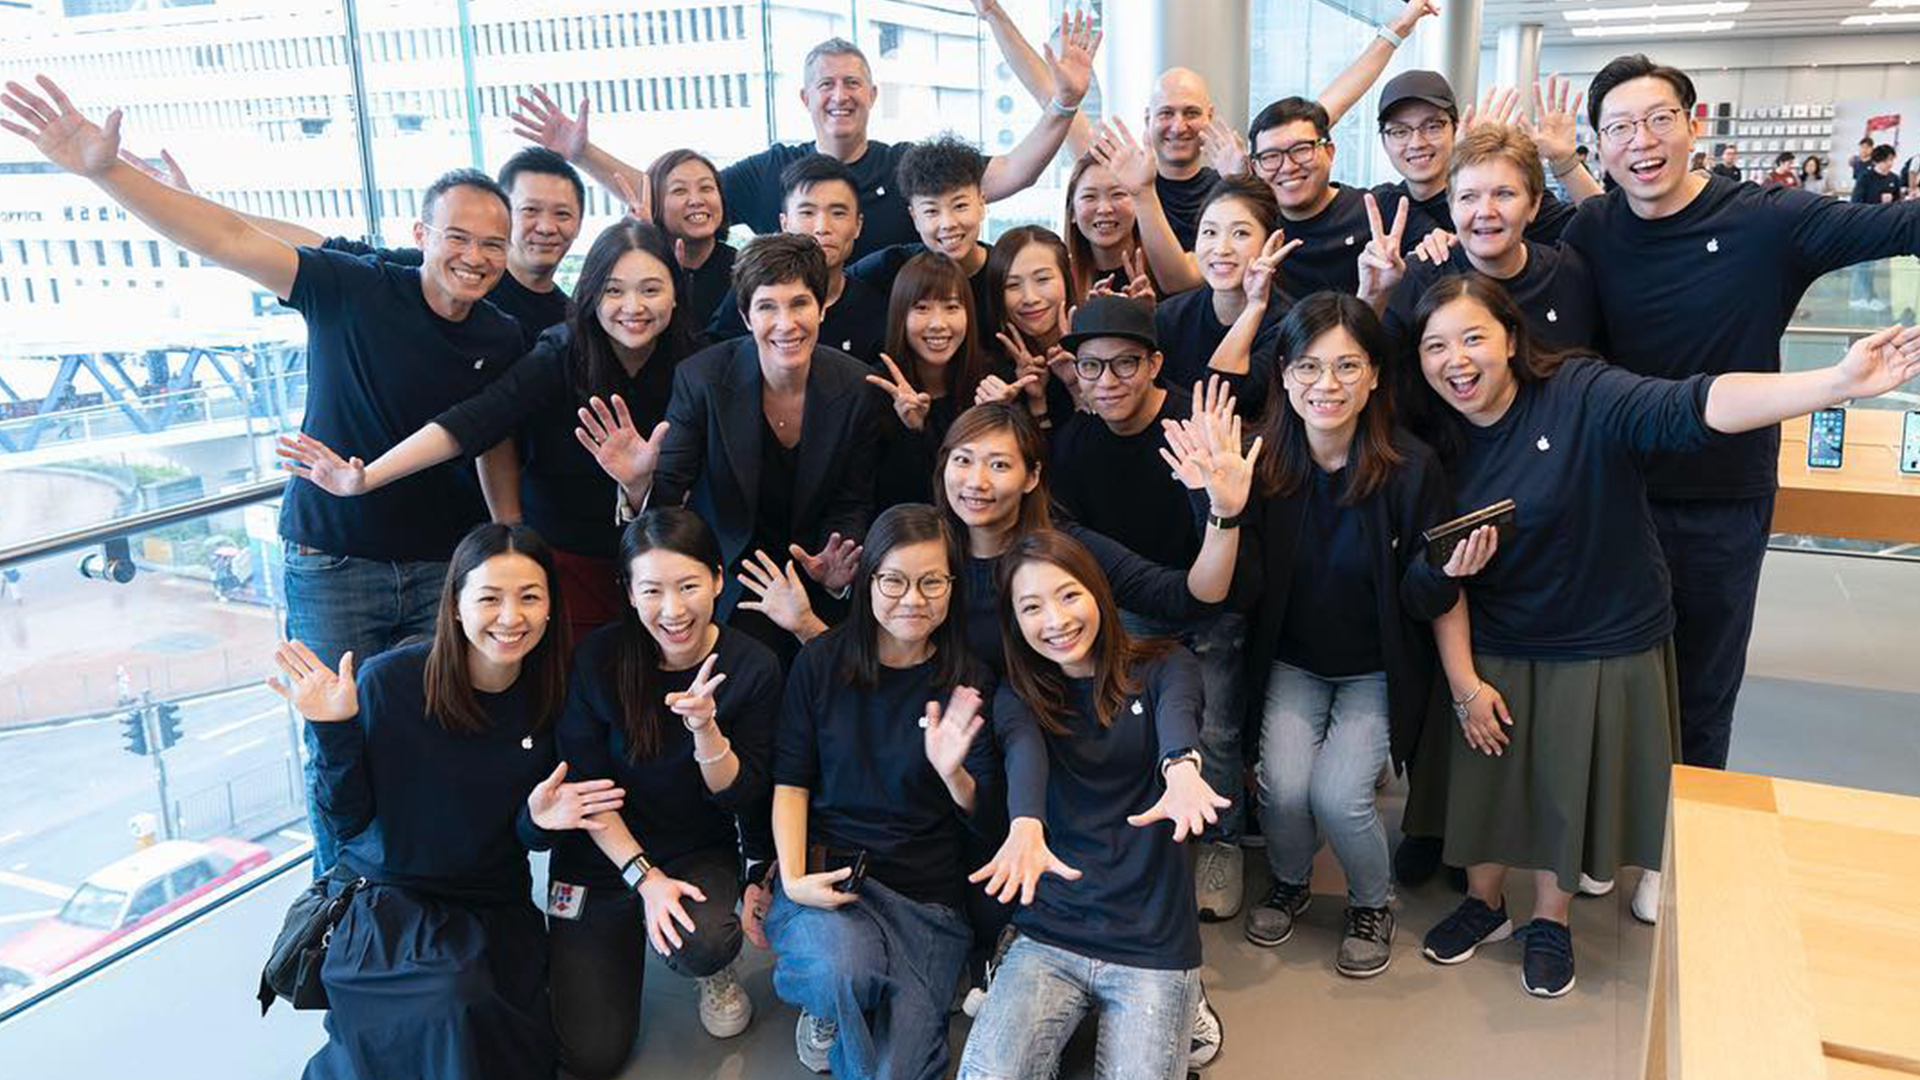 Deirdre O'Brien joins Instagram to share photos from global Apple Store tour